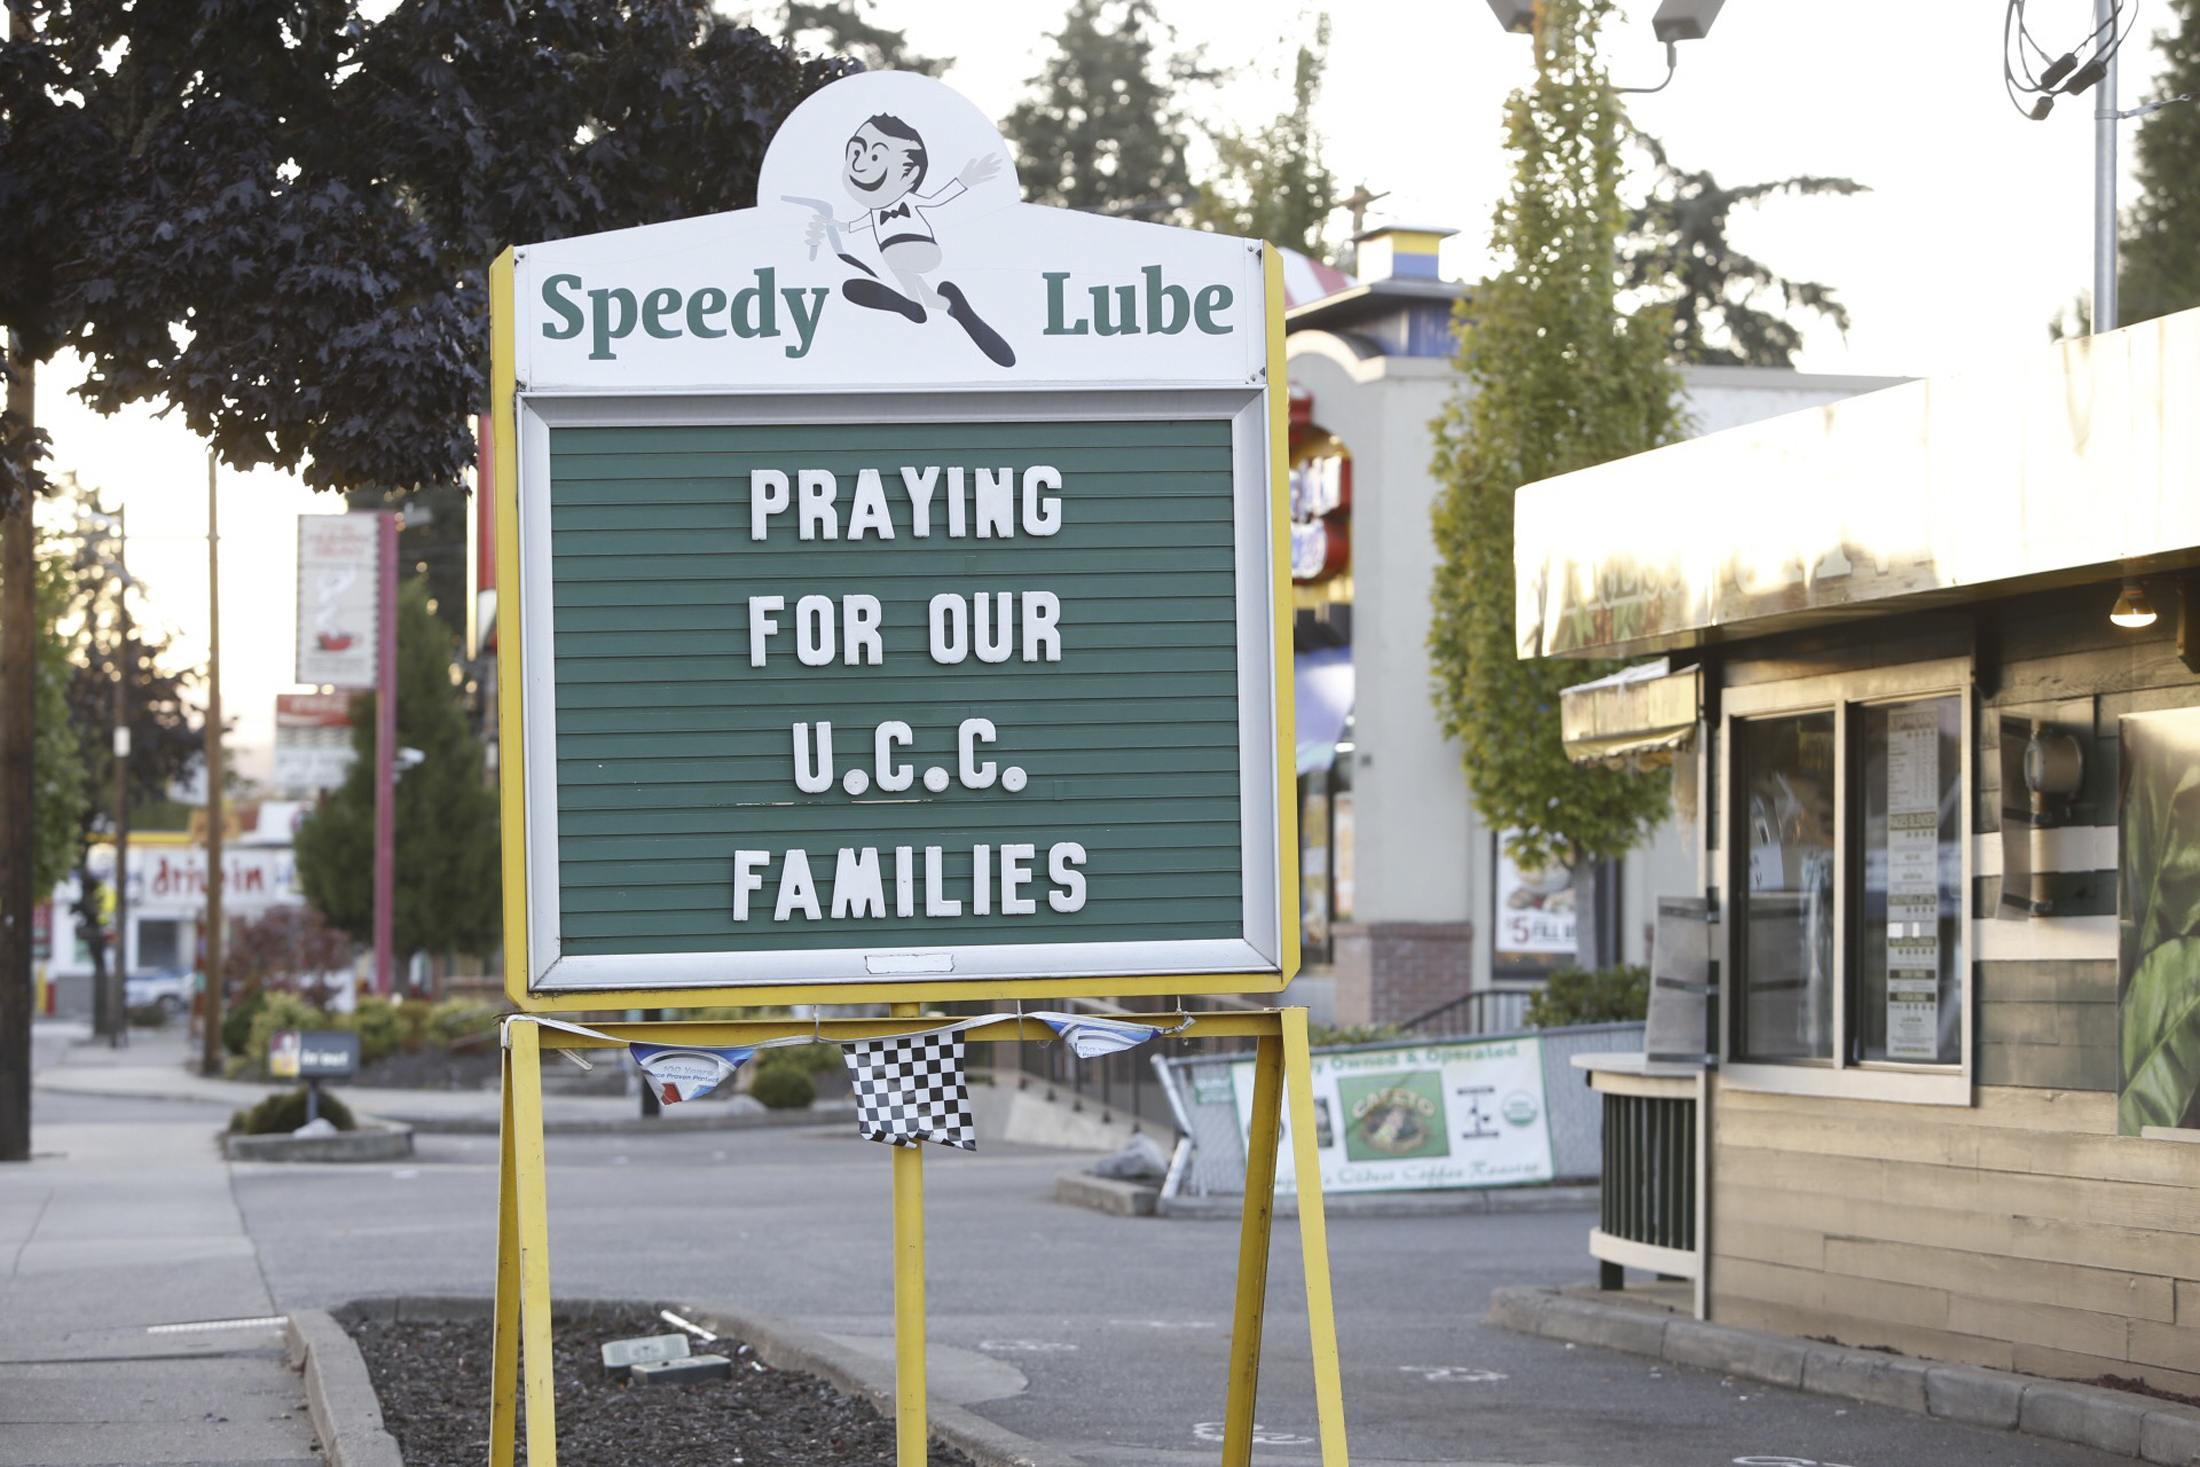 A sign expresses local people's sentiments following Thursday's UCC shooting. Photo by Steve Dipaola/Reuters